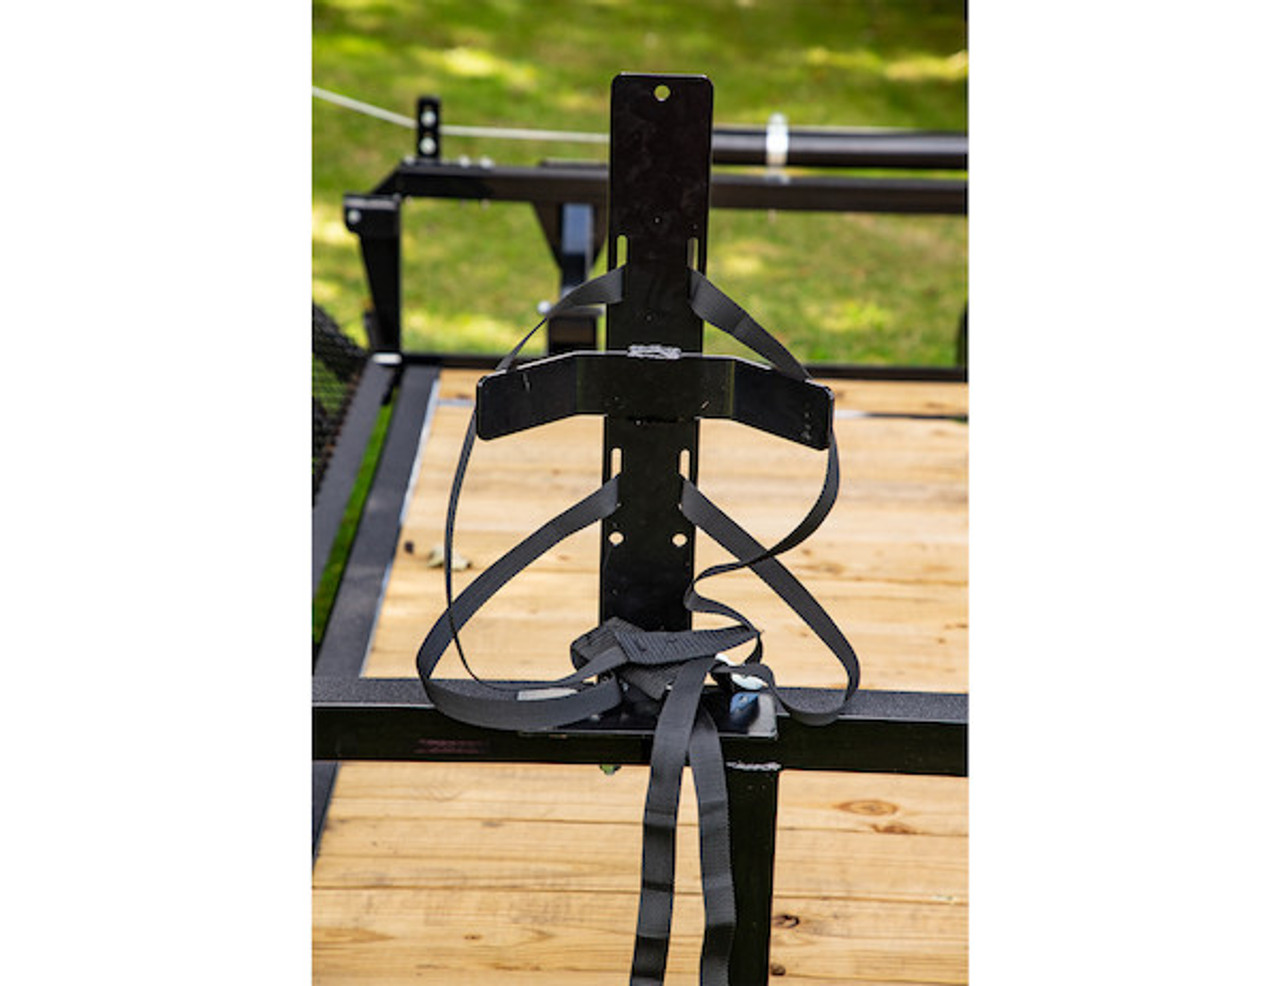 Buyers LT25 Water Cooler Rack for Landscaping Trailers, Utility Vehicles and Garages Picture # 7